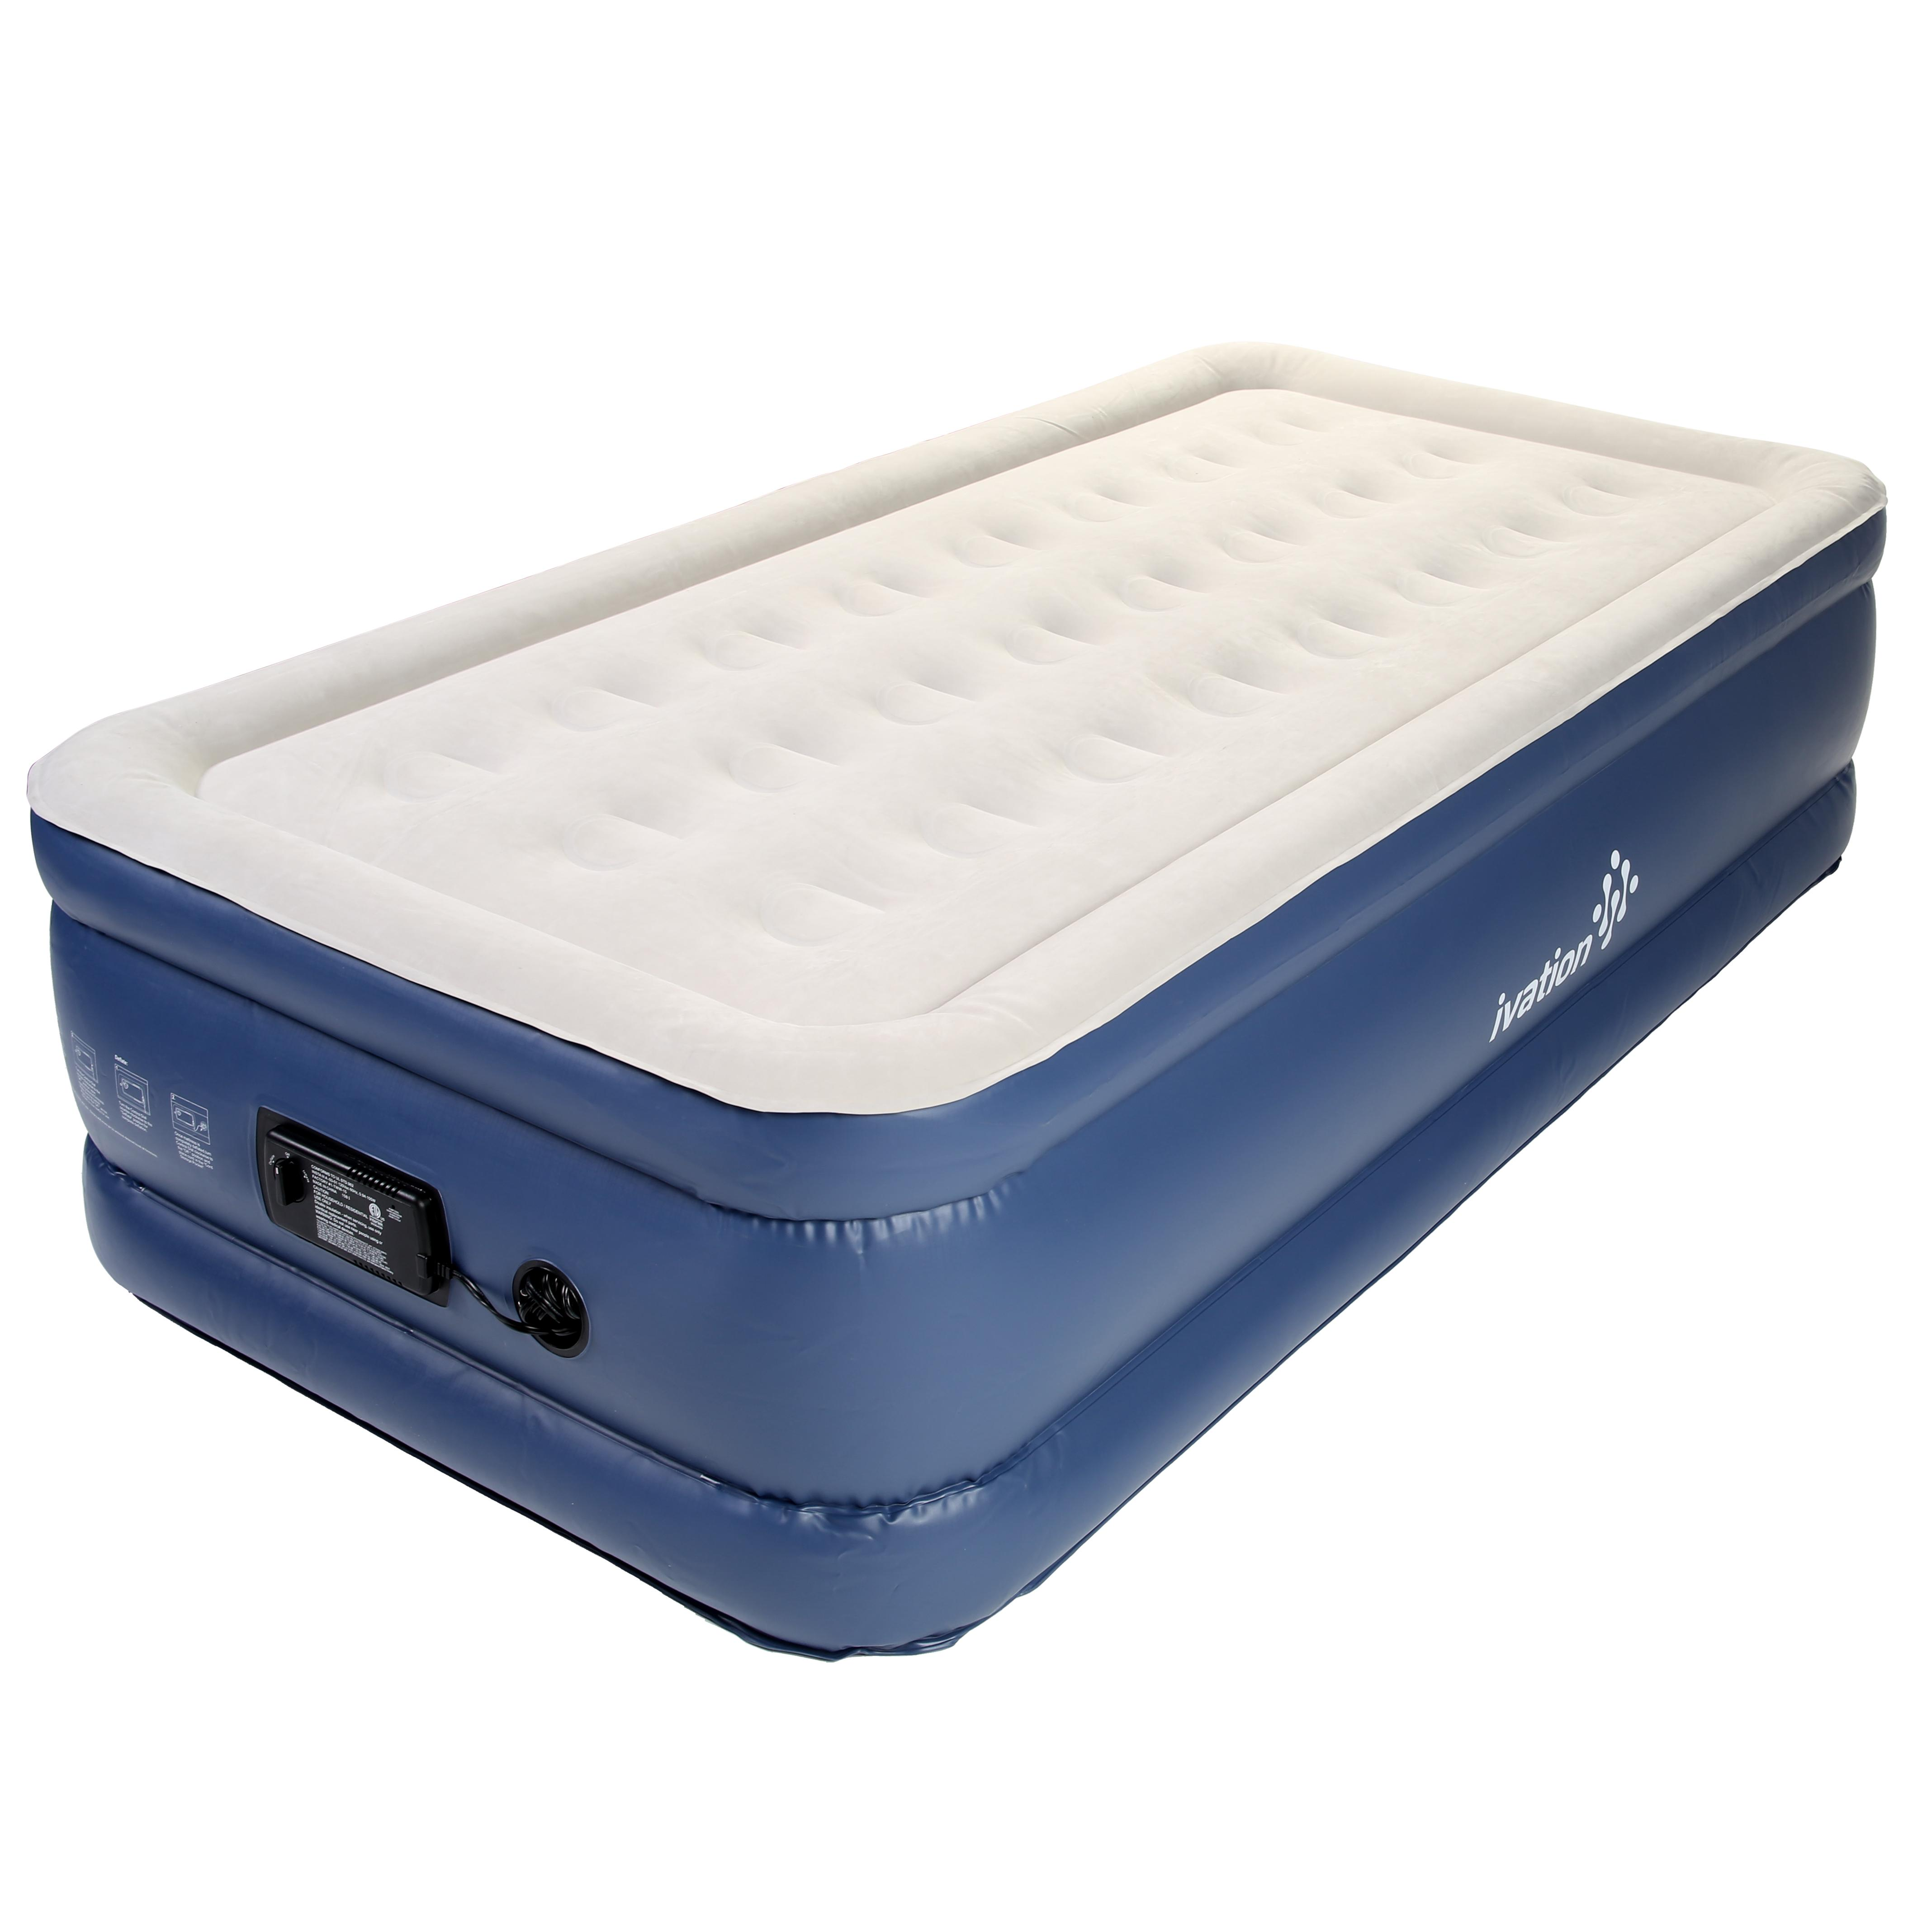 Double Inflatable Mattress Ivation Inflatable Air Bed Double Height Air Coil